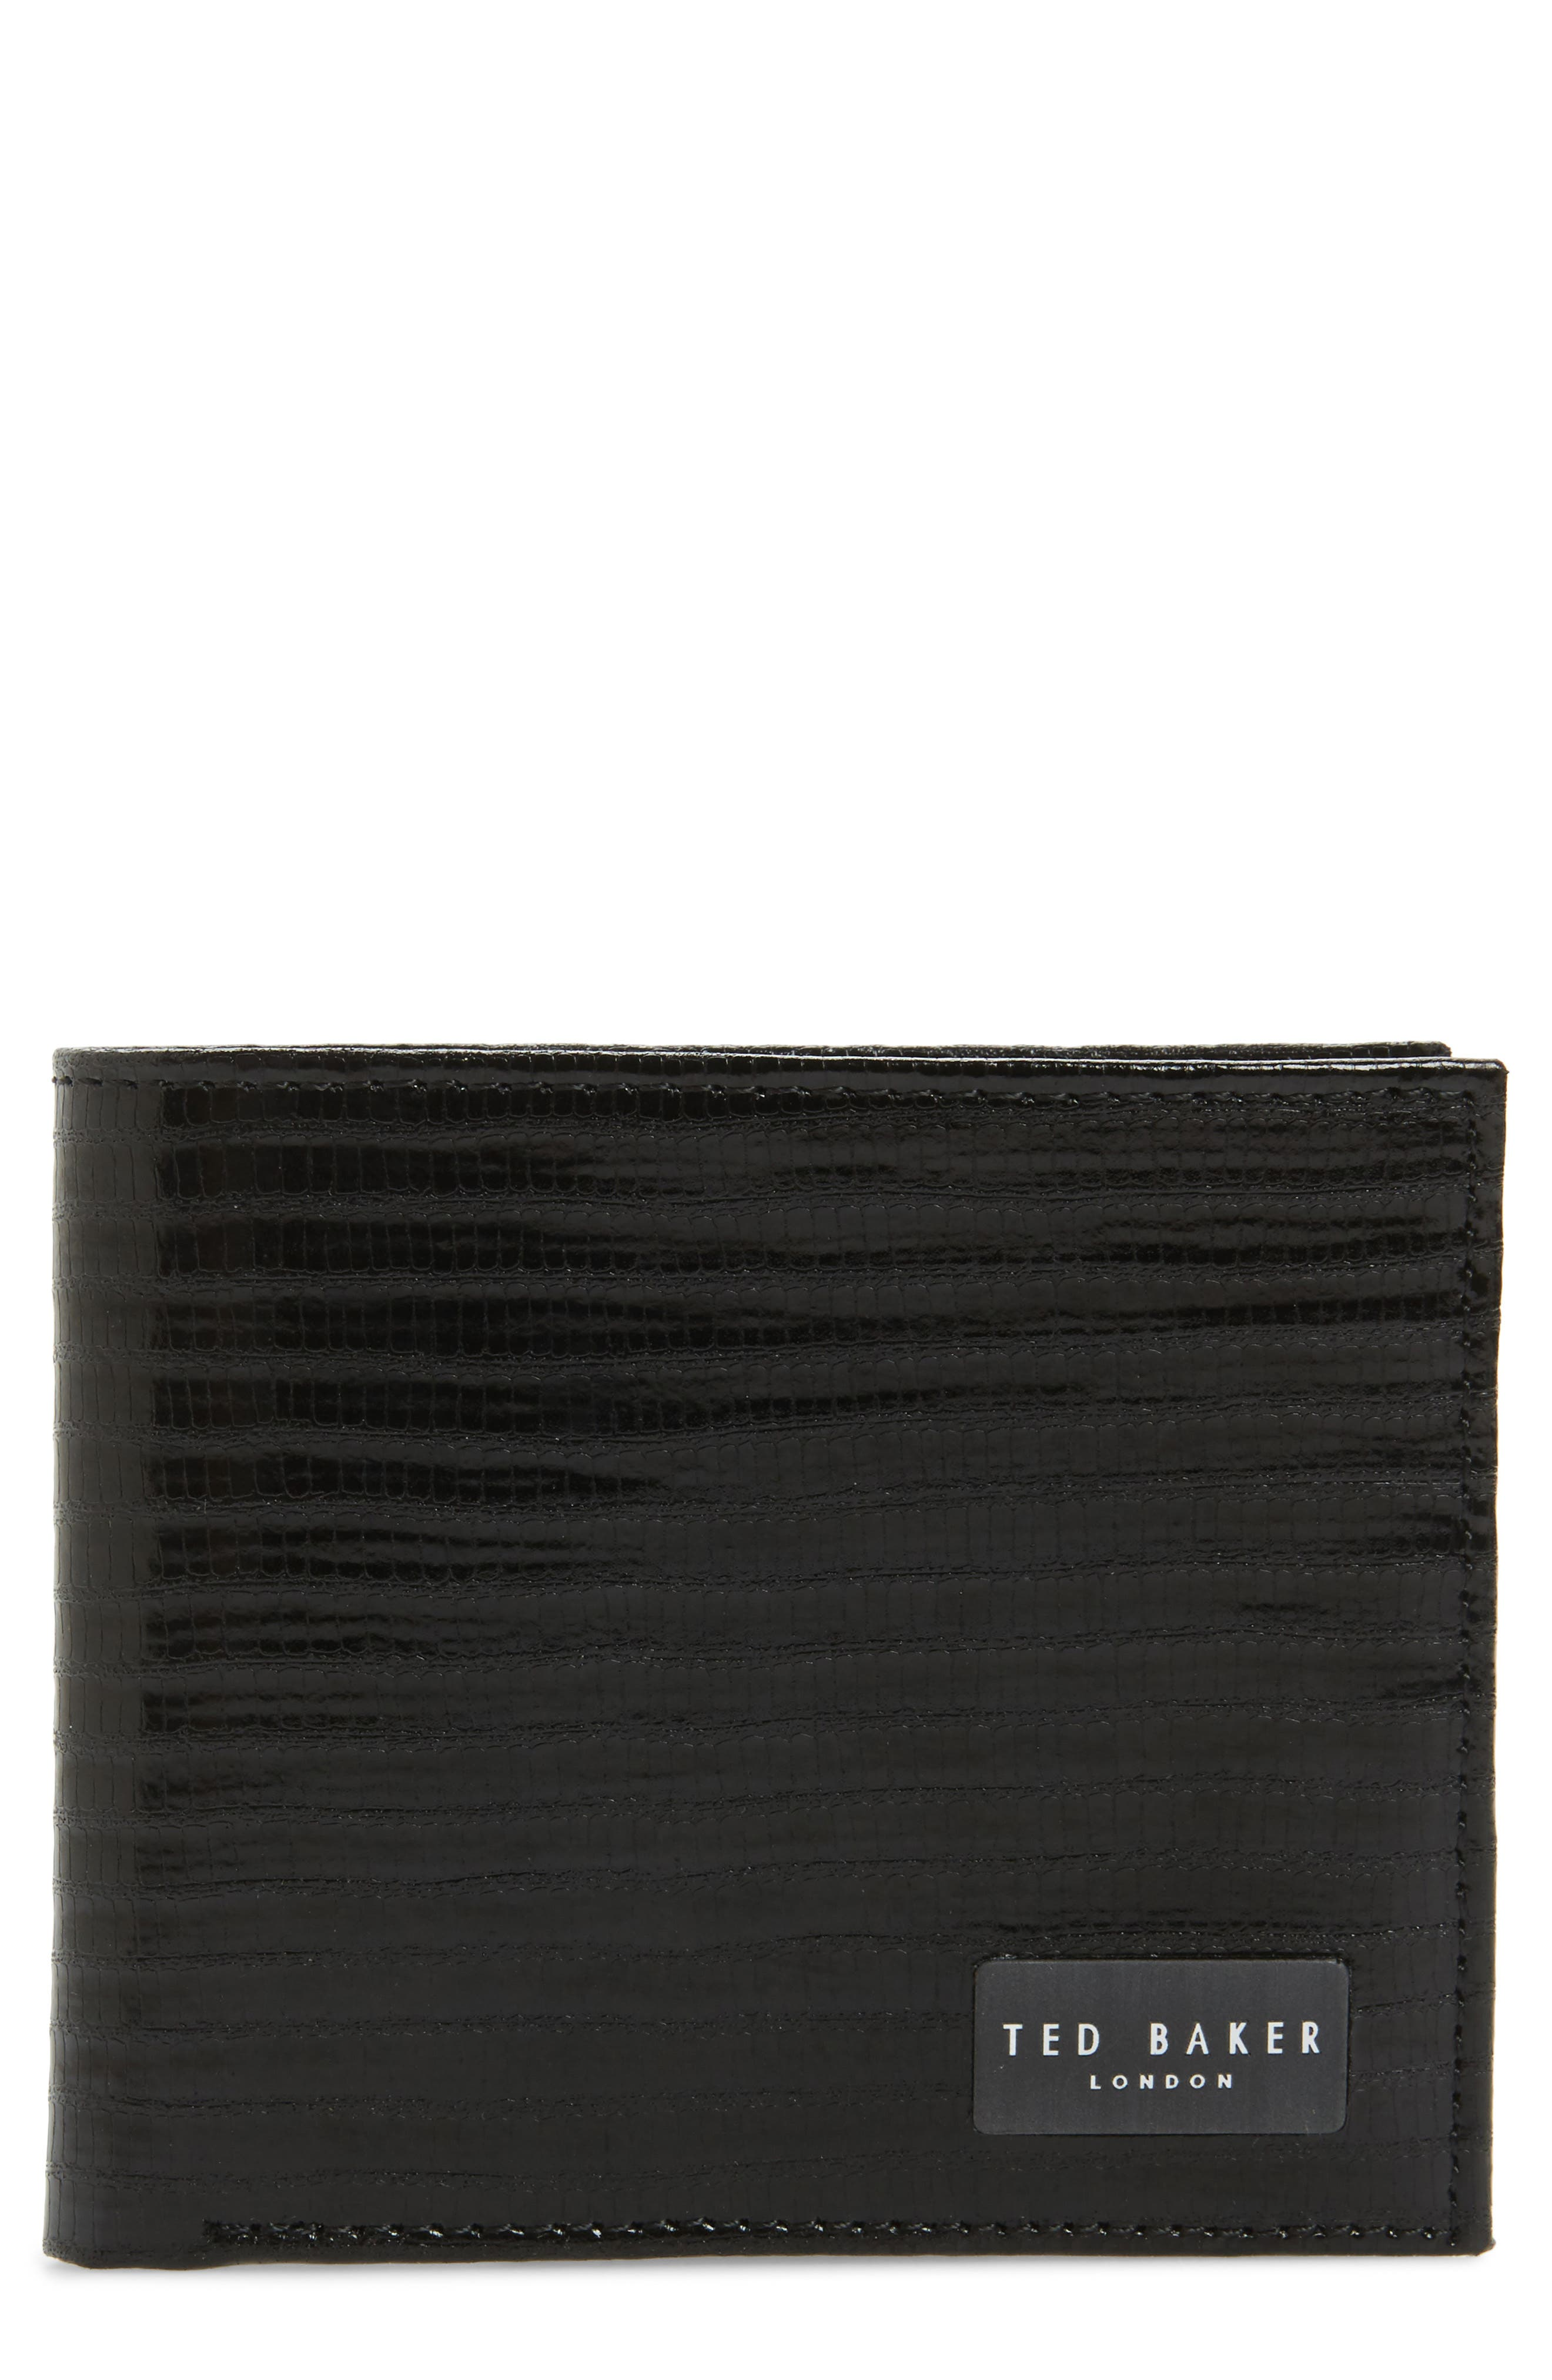 Slayts Leather Wallet,                         Main,                         color, Black